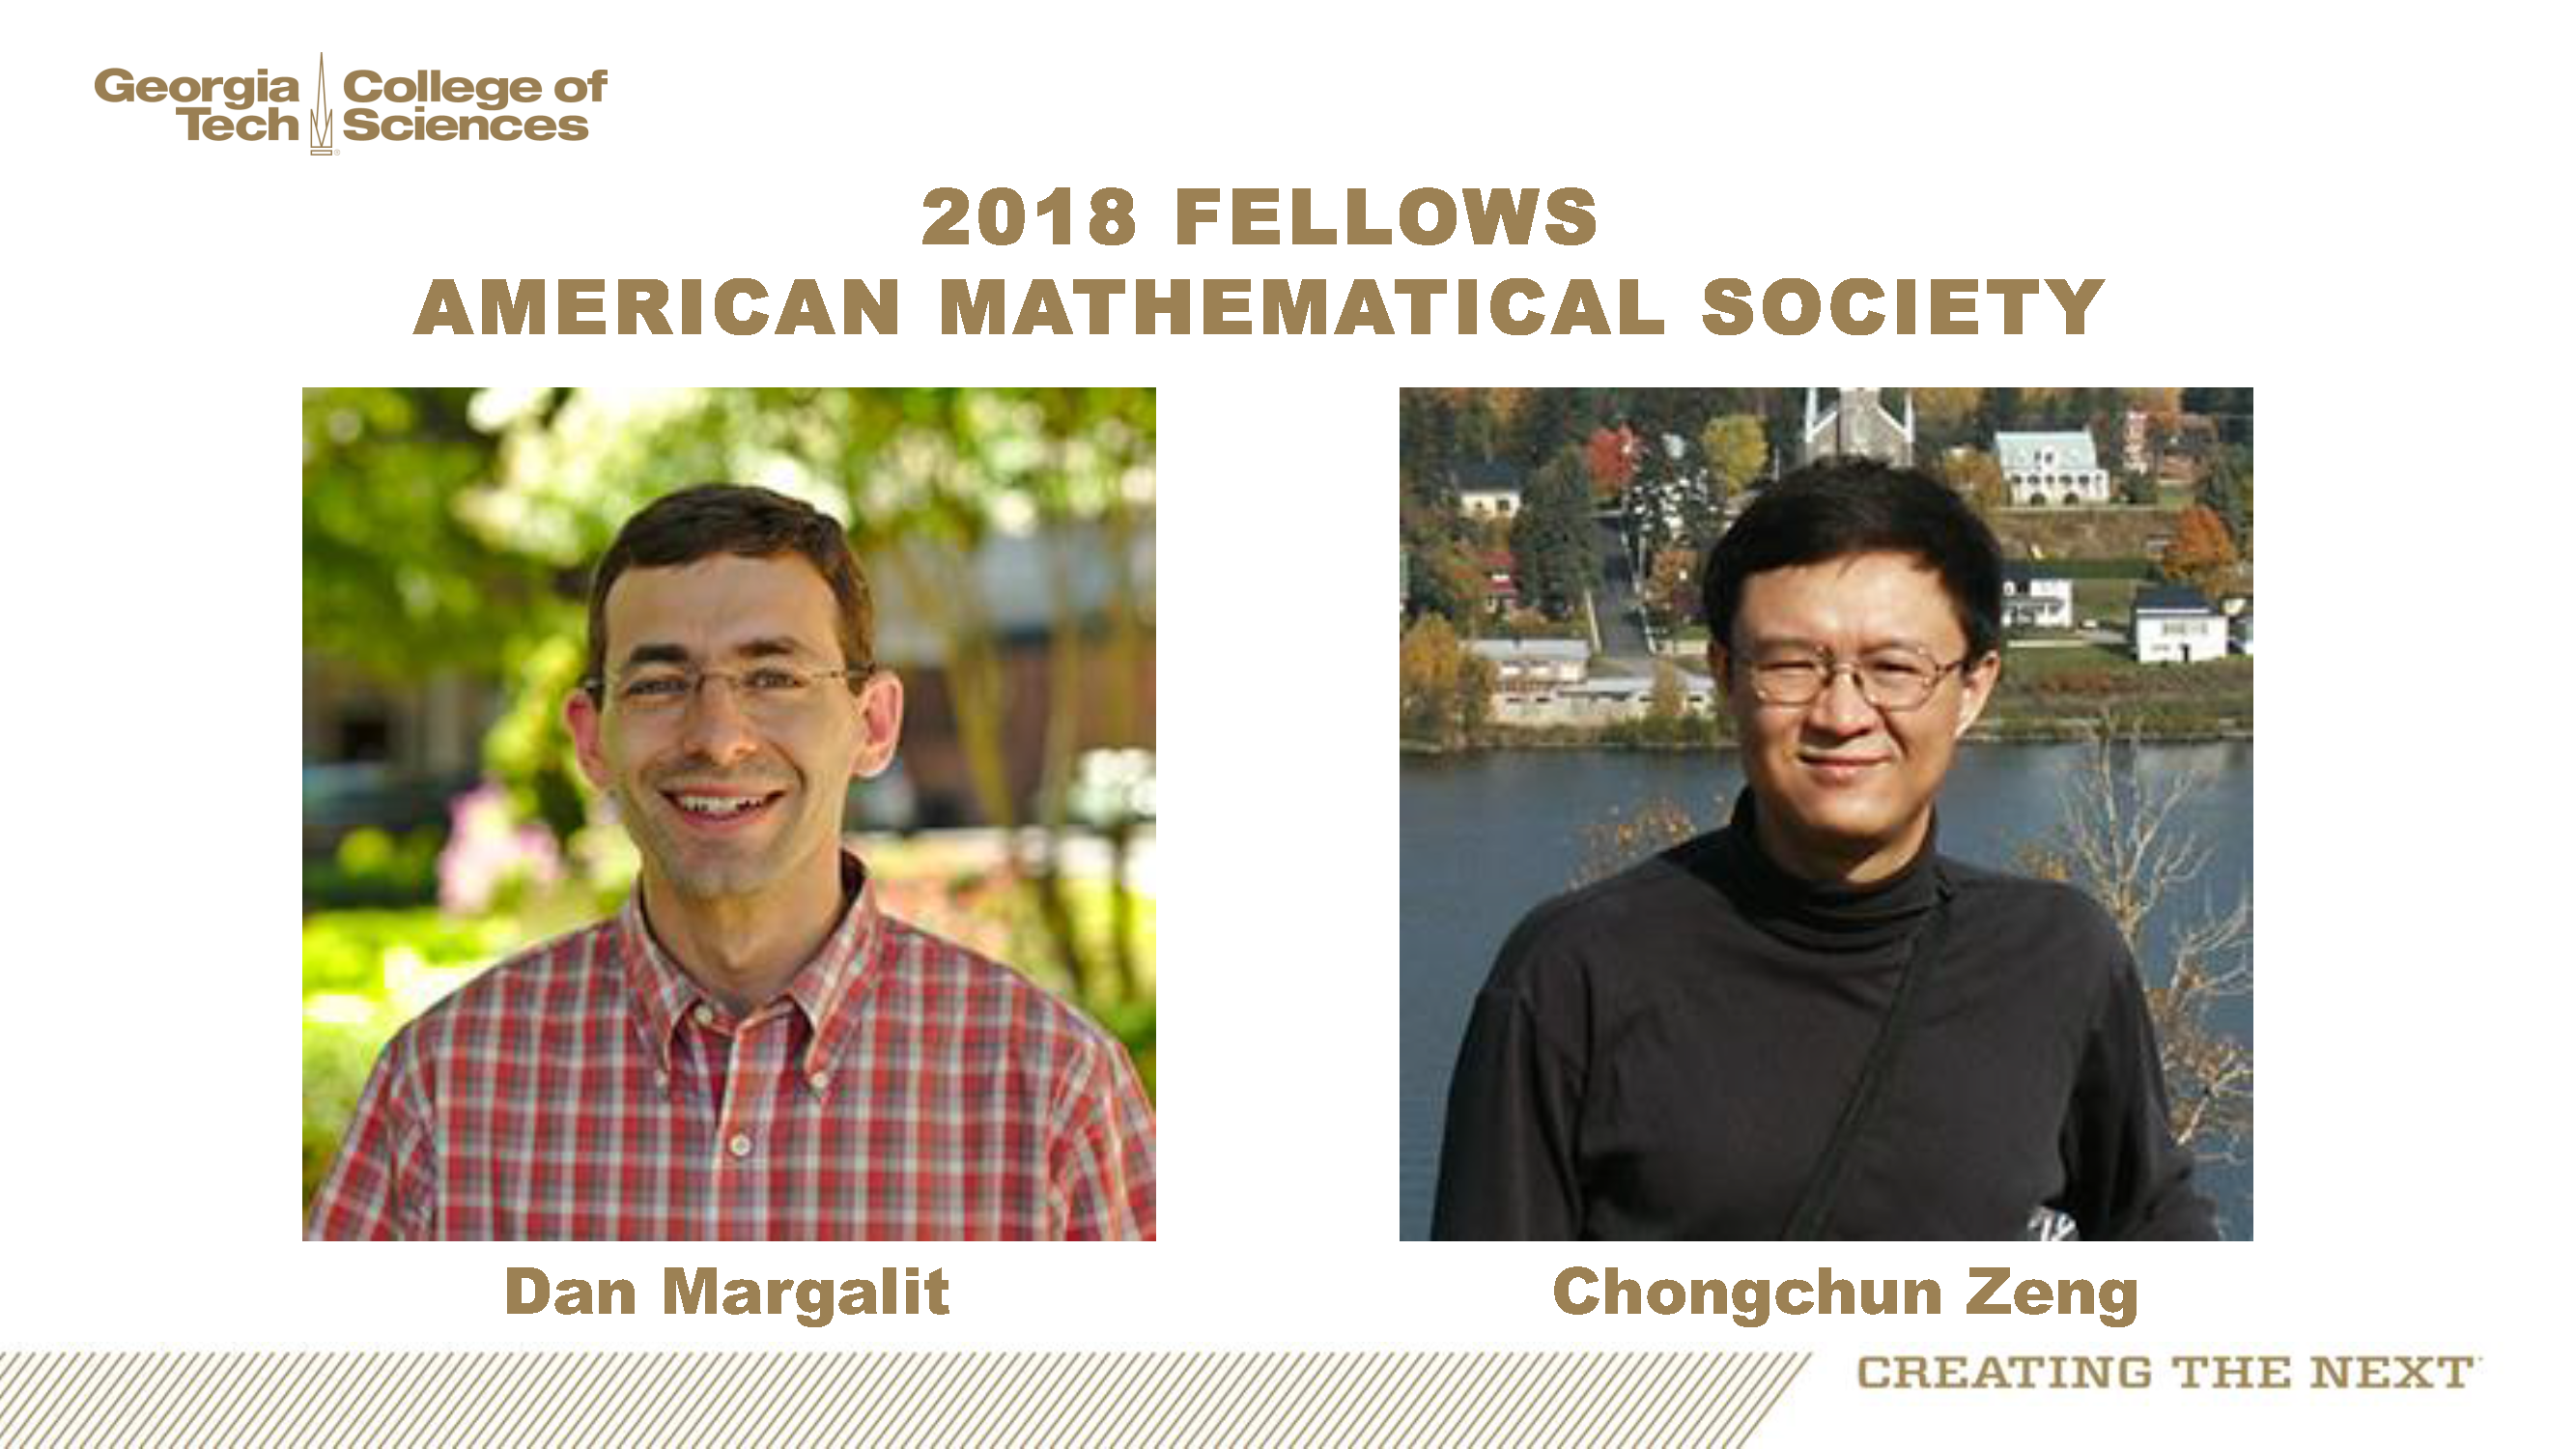 Margalit & Zeng, Fellows of the American Mathematical Society